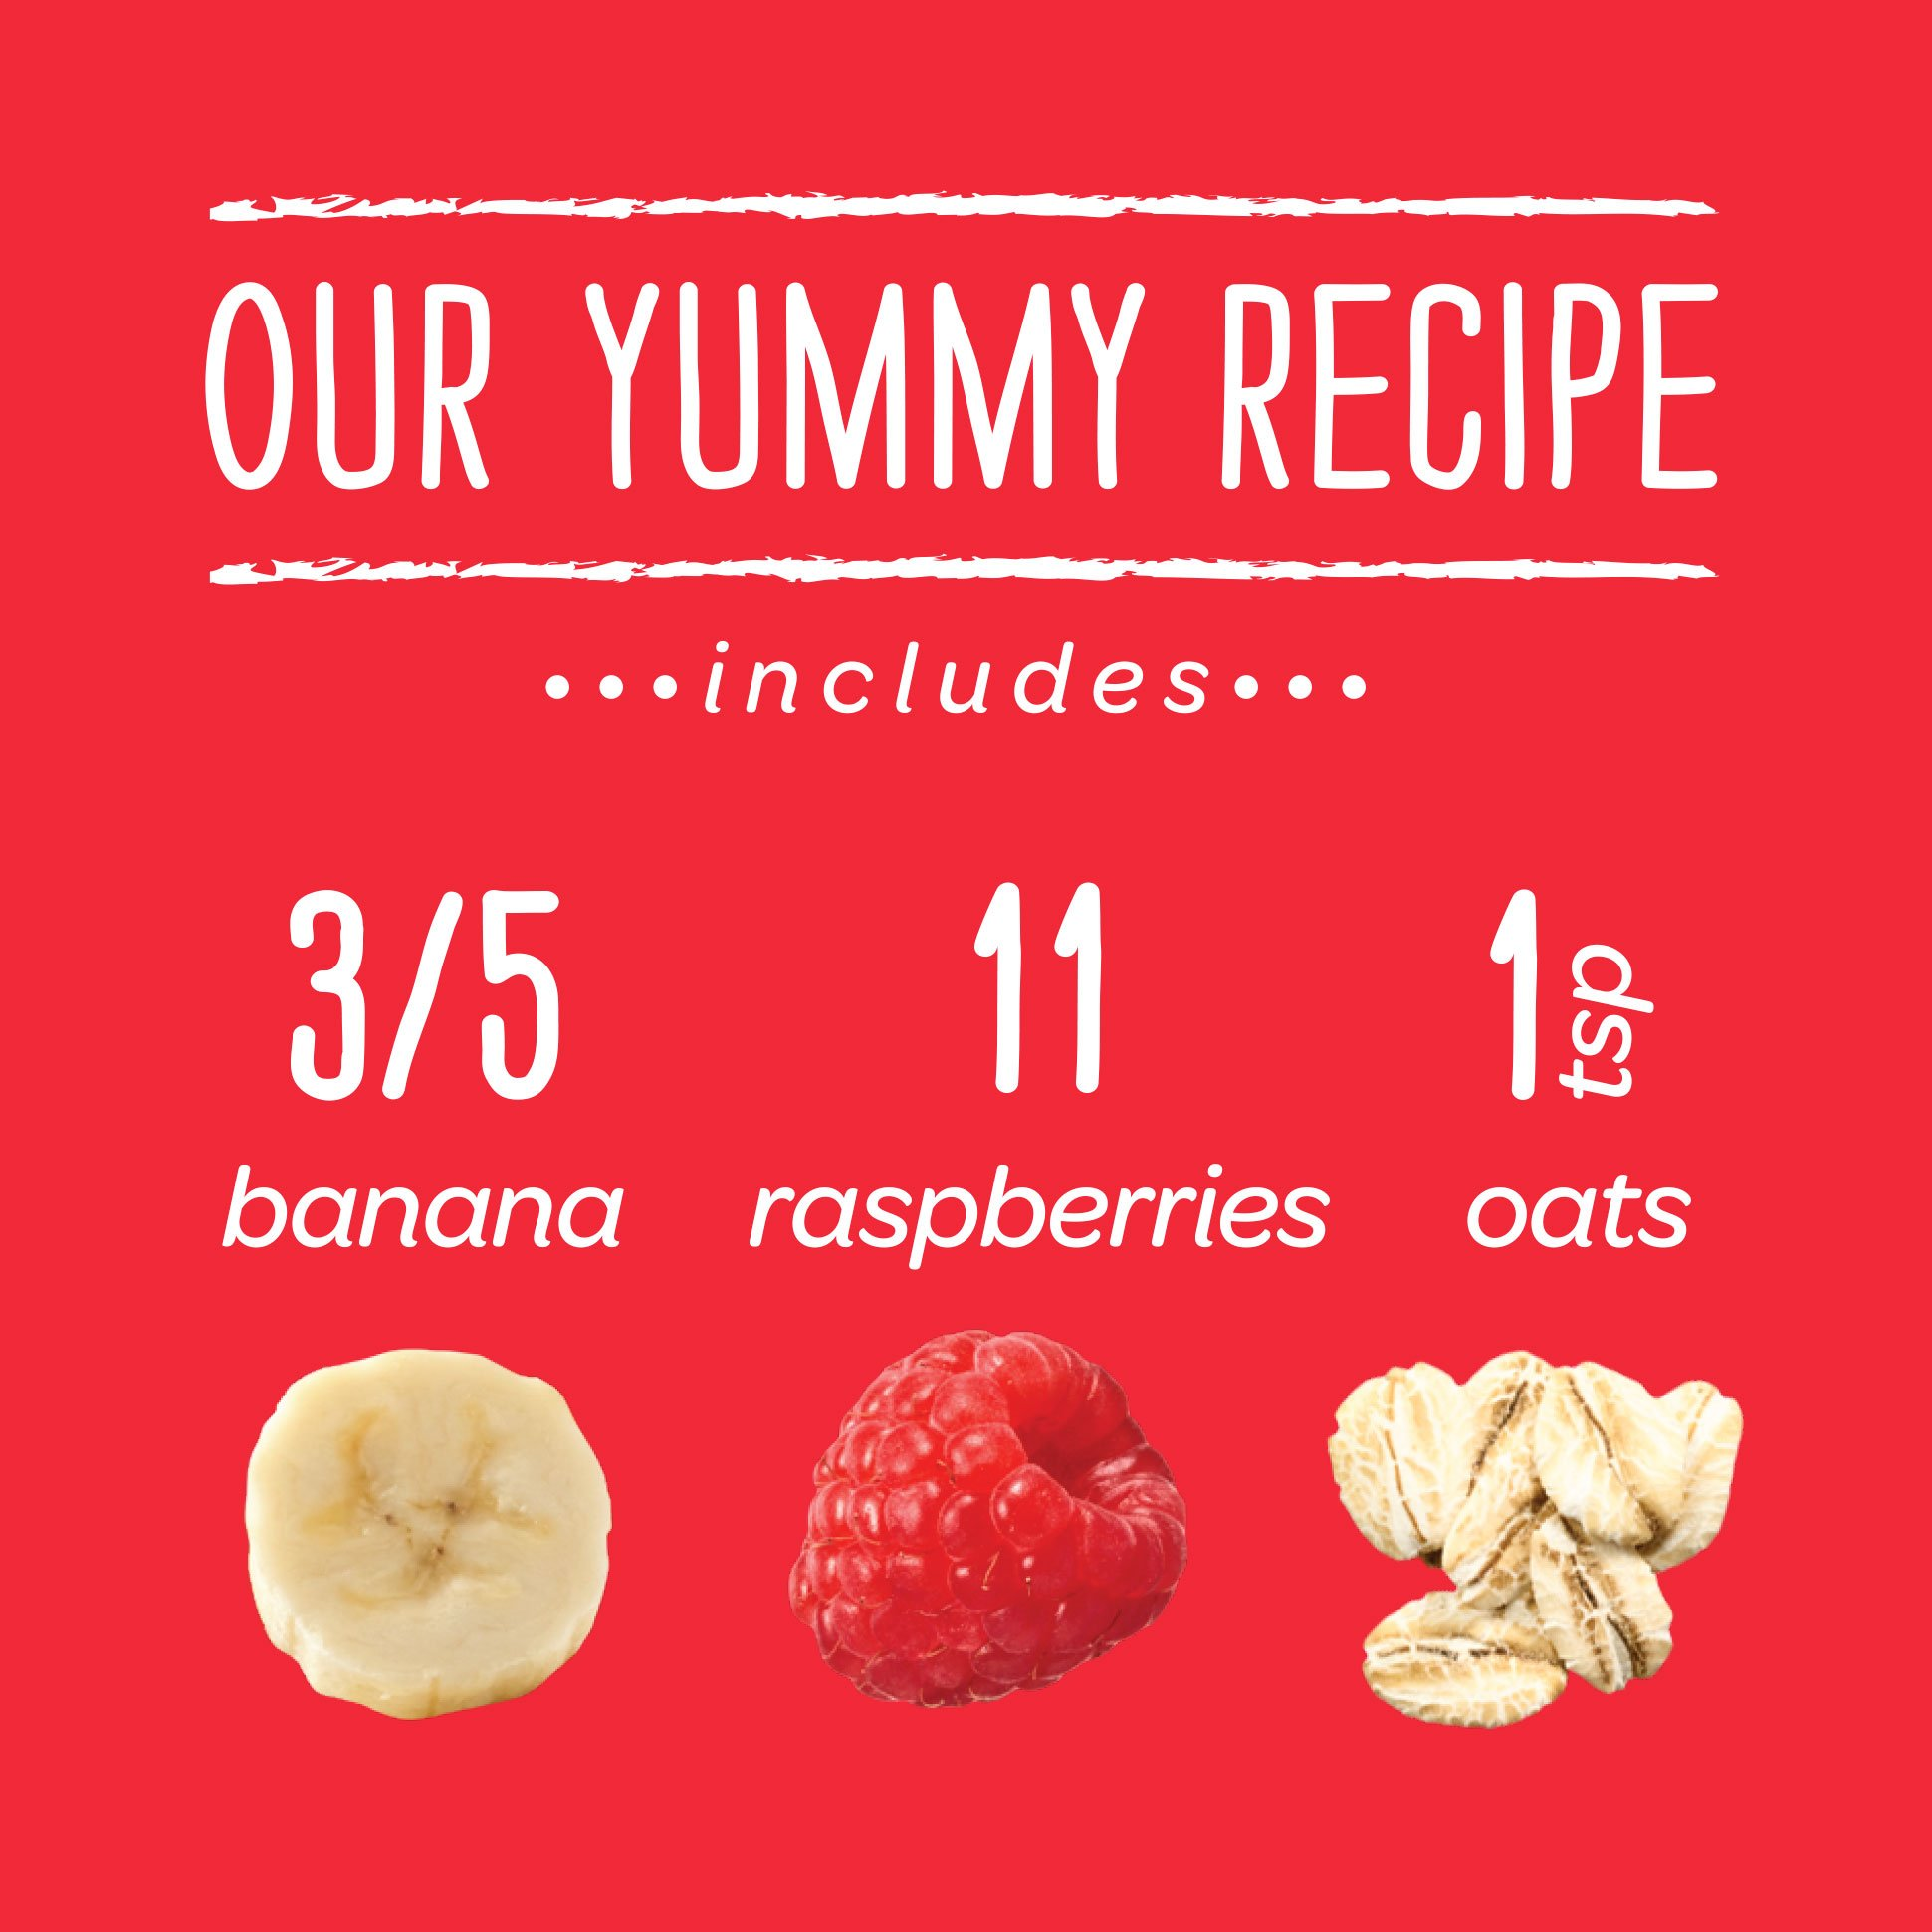 Happy Baby Organic Clearly Crafted Stage 2 Baby Food Bananas Raspberries & Oats, 4 Ounce Pouch (Pack of 16) Resealable Baby Food Pouches, Fruit & Veggie Puree, Organic Non-GMO Gluten Free Kosher by Happy Baby (Image #5)